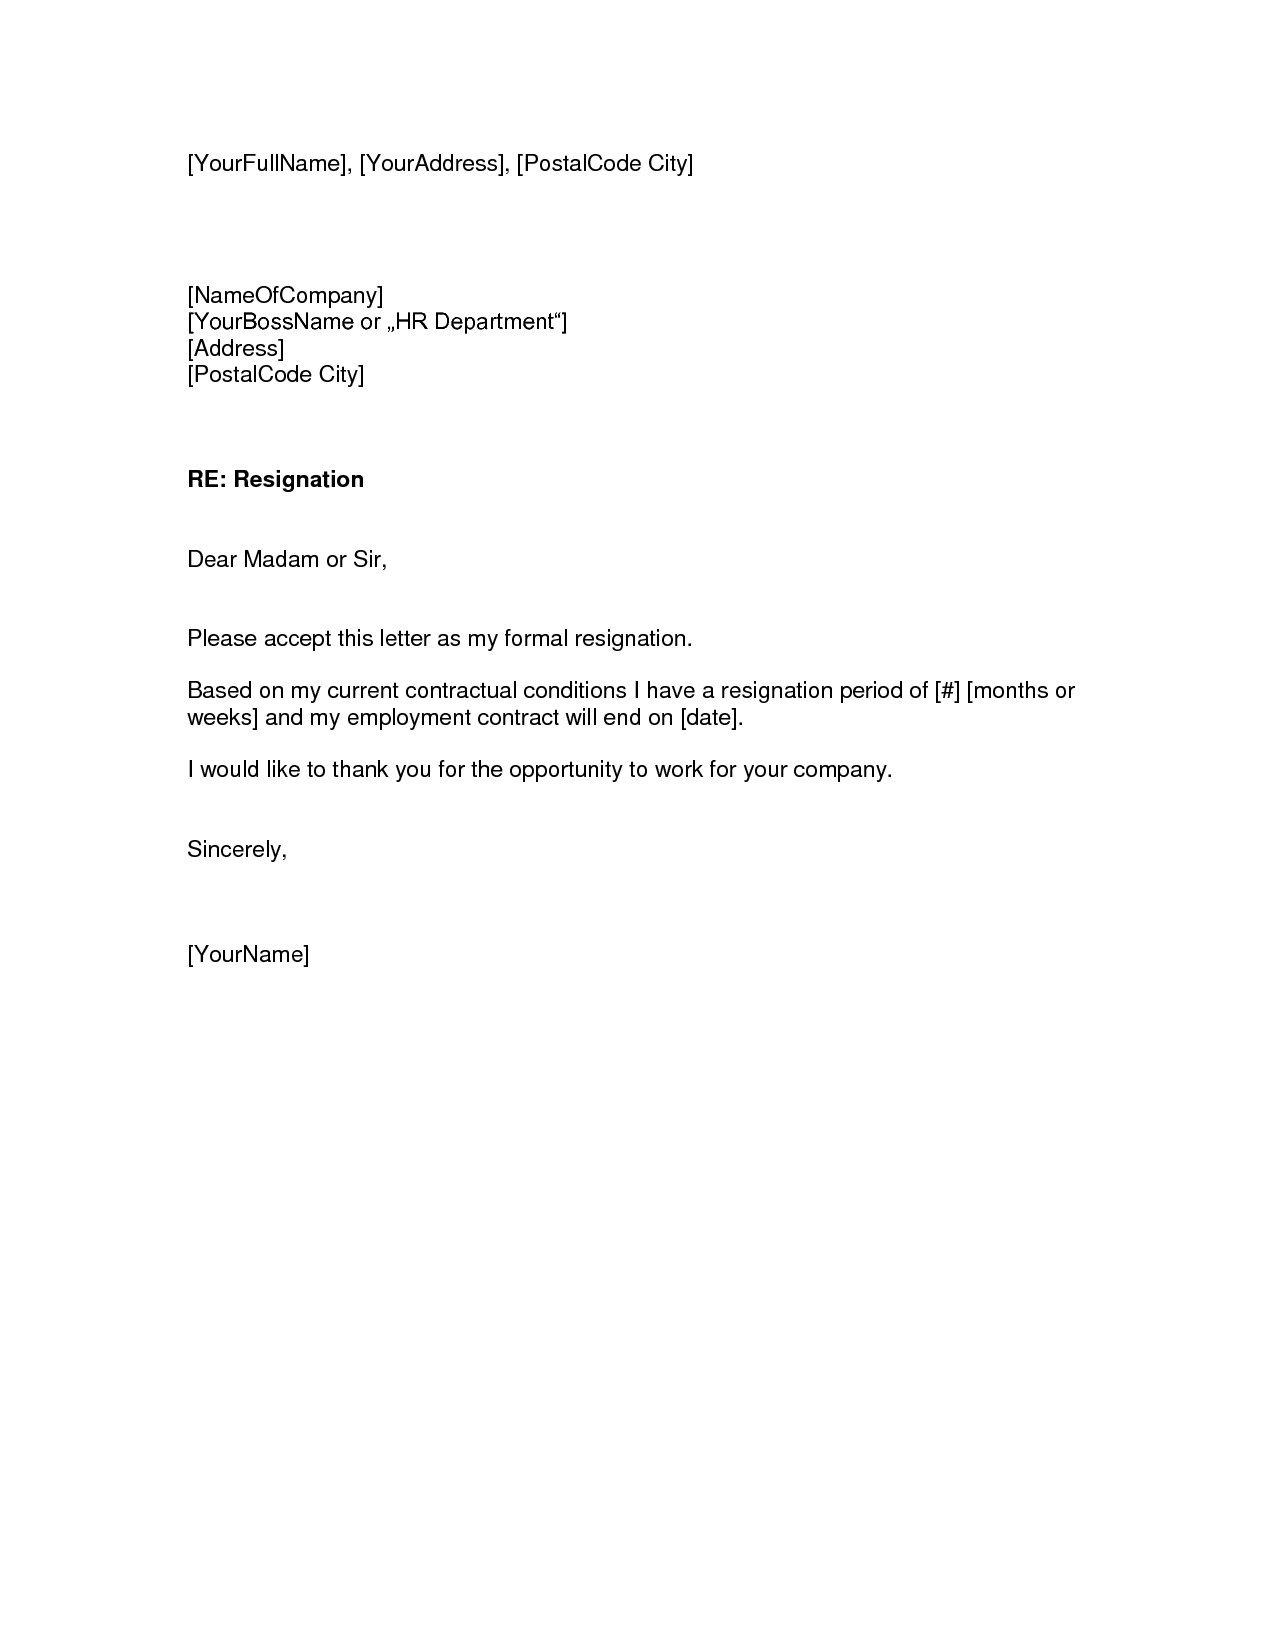 Sample resignation letter gresremmyvolunteer letter template sample resignation letter gresremmyvolunteer letter template application letter sample altavistaventures